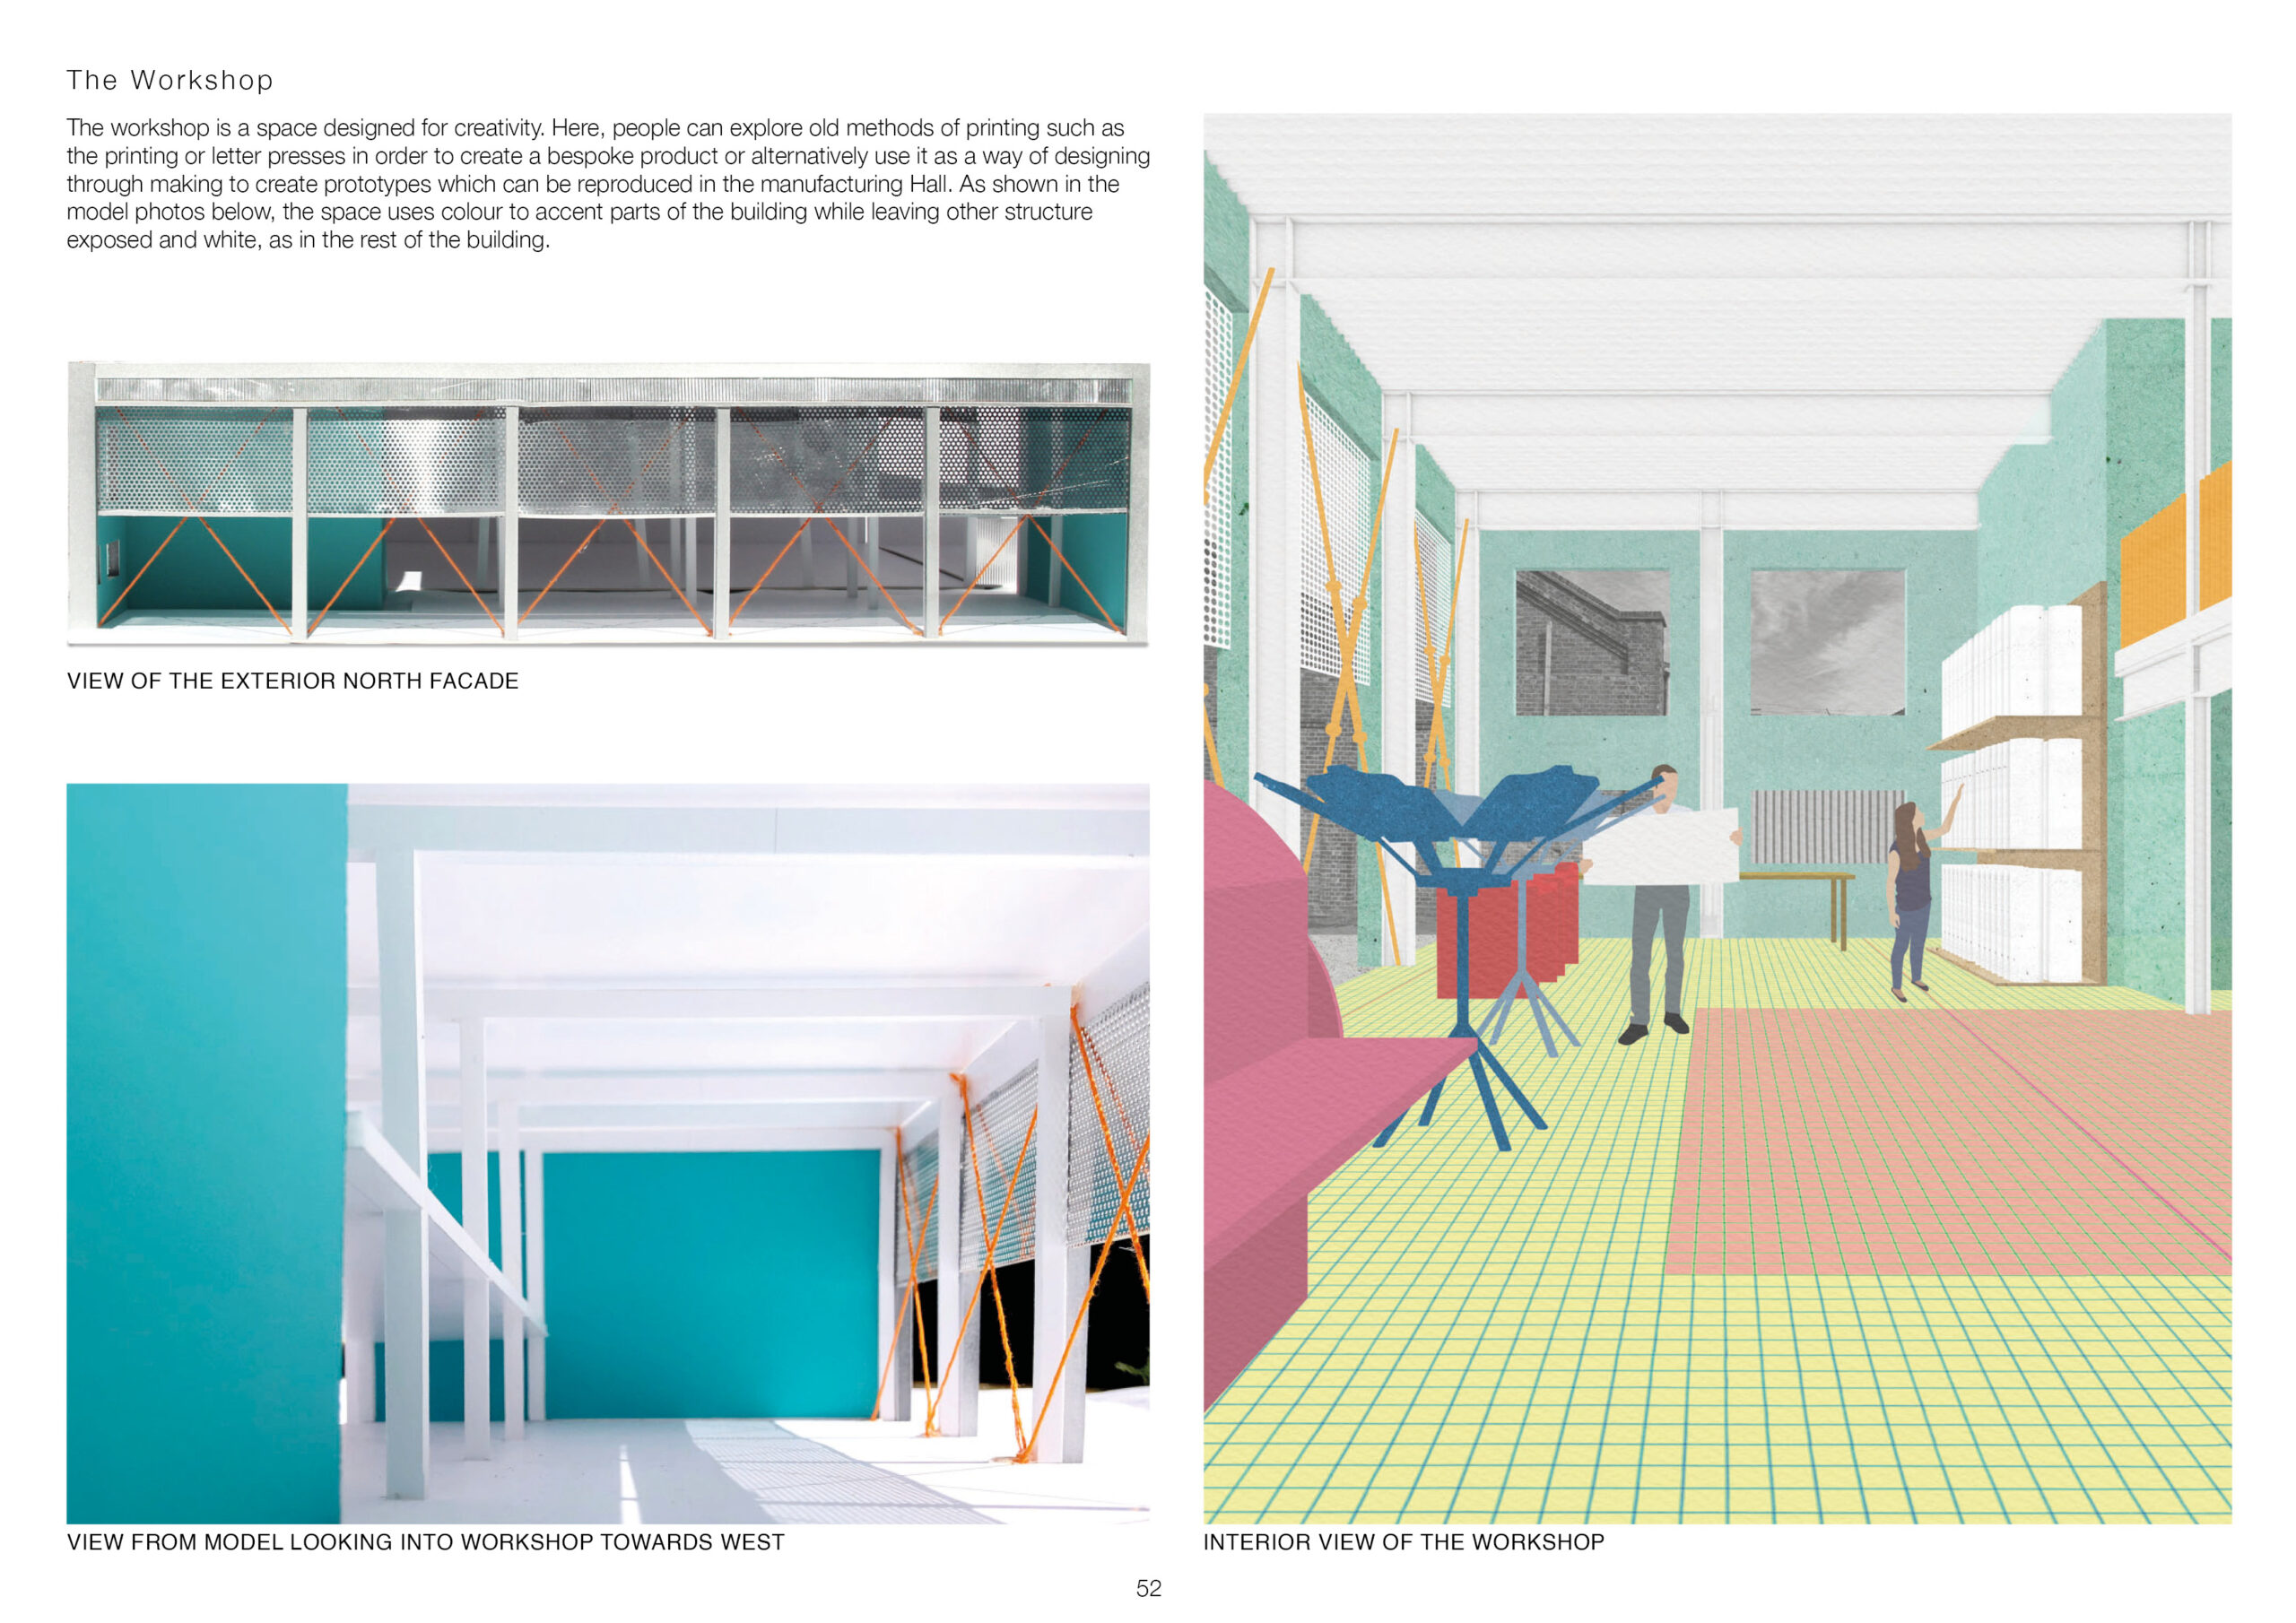 this page illustrates the workshop, it has turquoise walls  and white structure and orange bracing. This has been shown in a render and model images